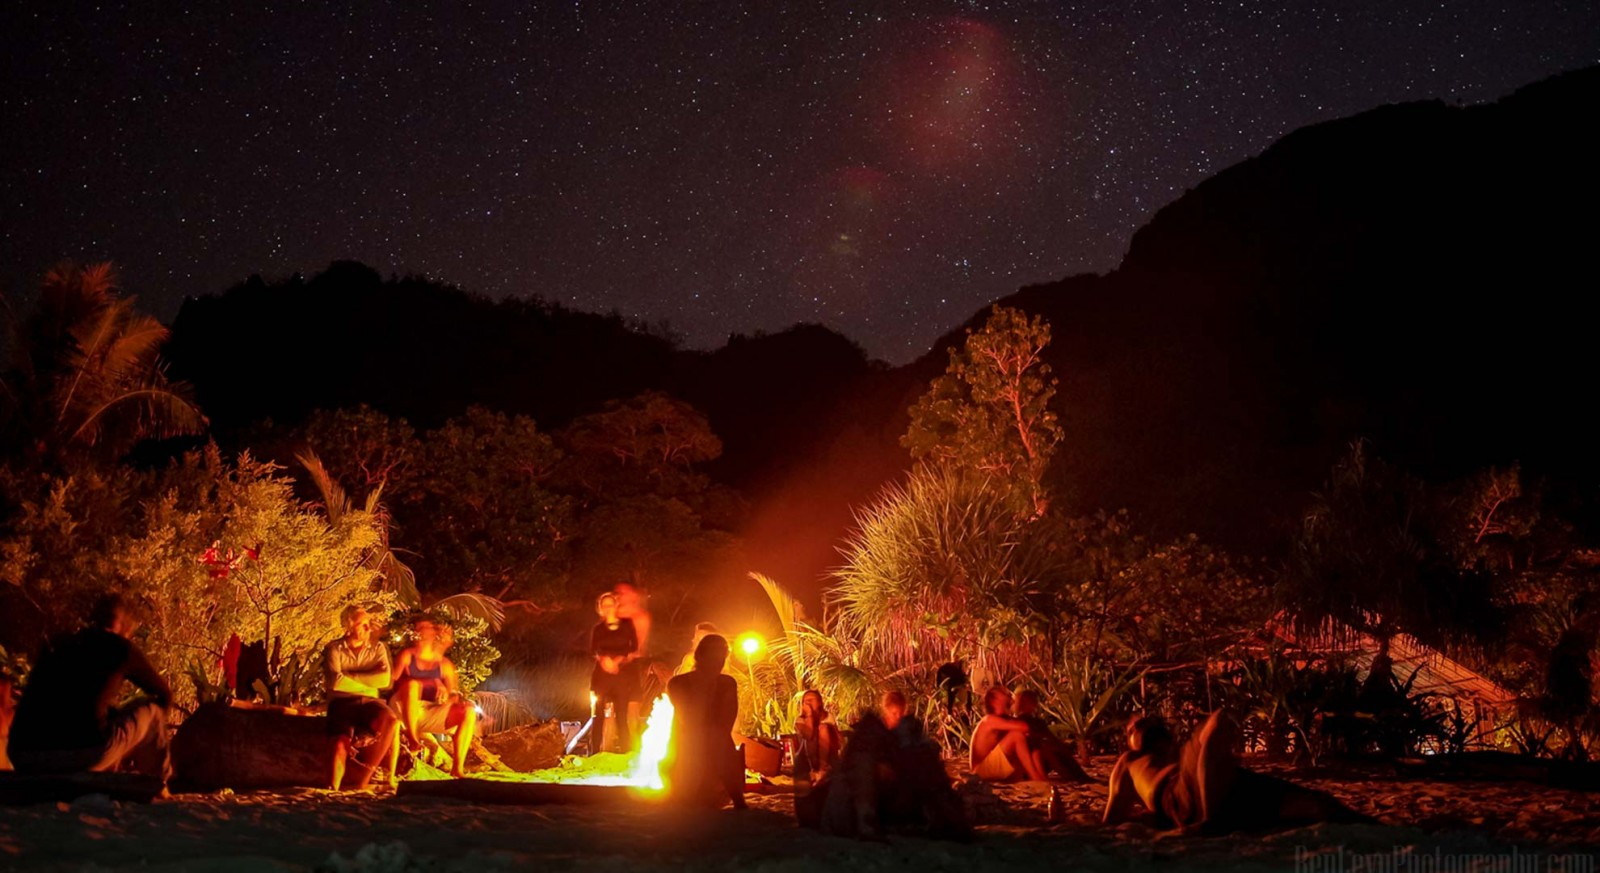 campfire-by-tao-philippines.jpg